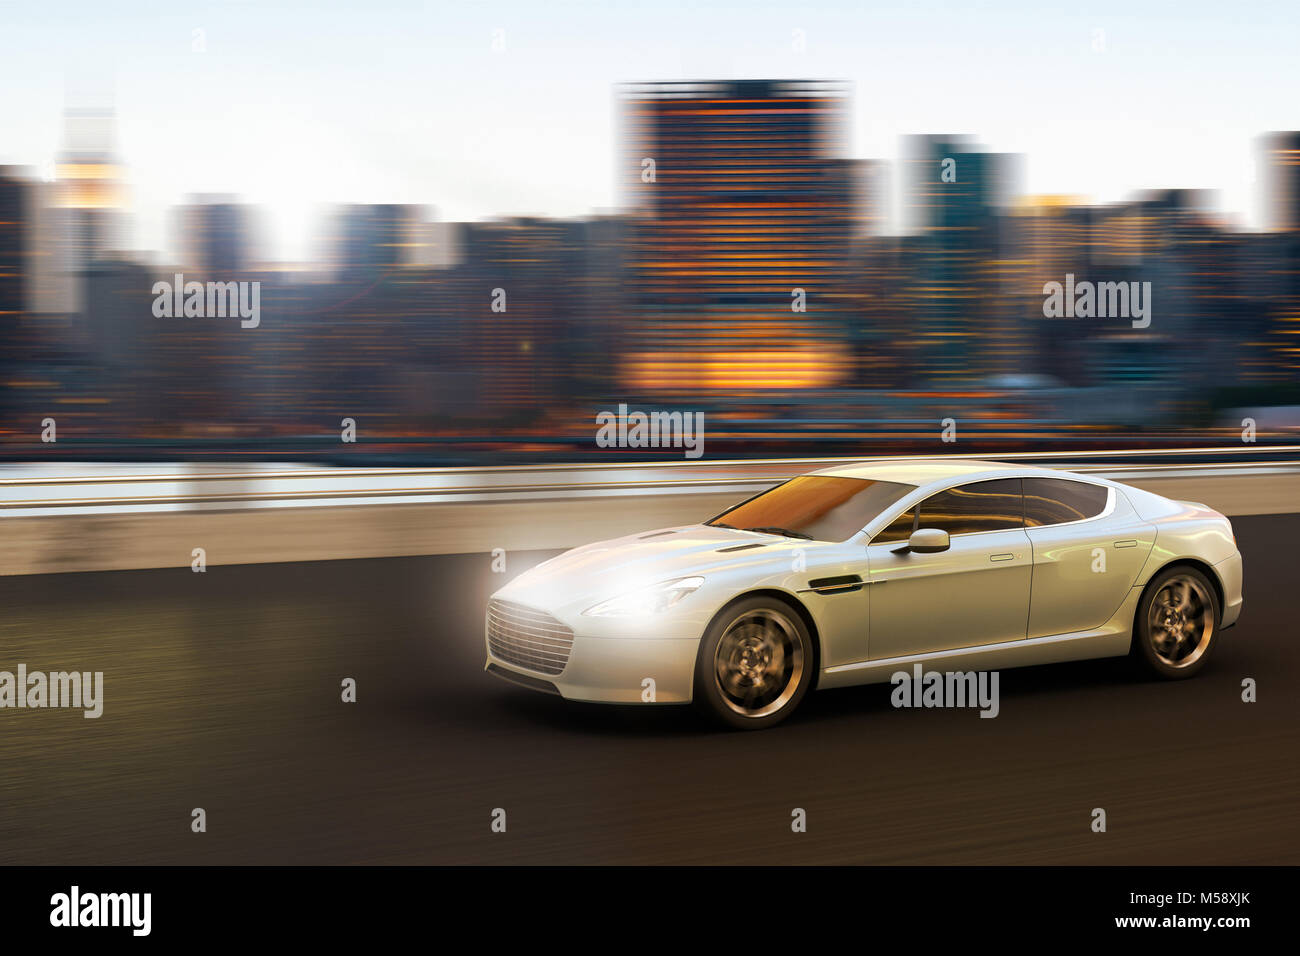 3D rendering of a luxury car in motion in front of Manhattan skyline, New York City, New York, USA - Stock Image